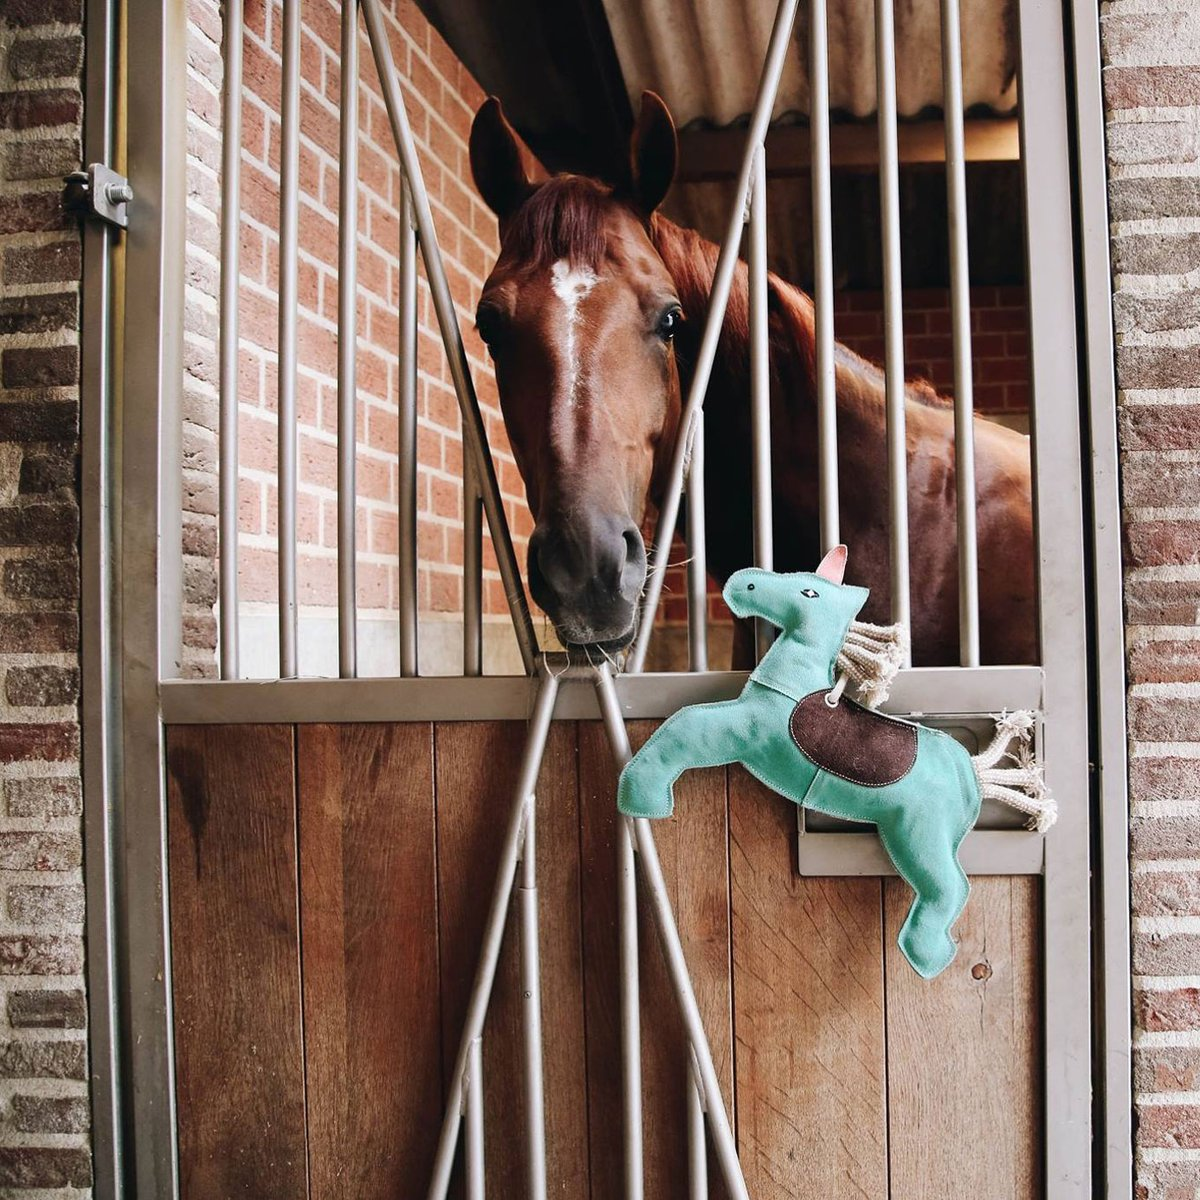 NEW BLOG: Our Tips for Keeping Your Horse Happy and Healthy  From training aids to stable toys, we've got everything you need  READ NOW: https://bit.ly/2J3NtZq  #Equestrian #Equiport #NewBlog #EquestrianBlog #TrainingAids #StableToys #StableAccessoriespic.twitter.com/AFVNguPhS5